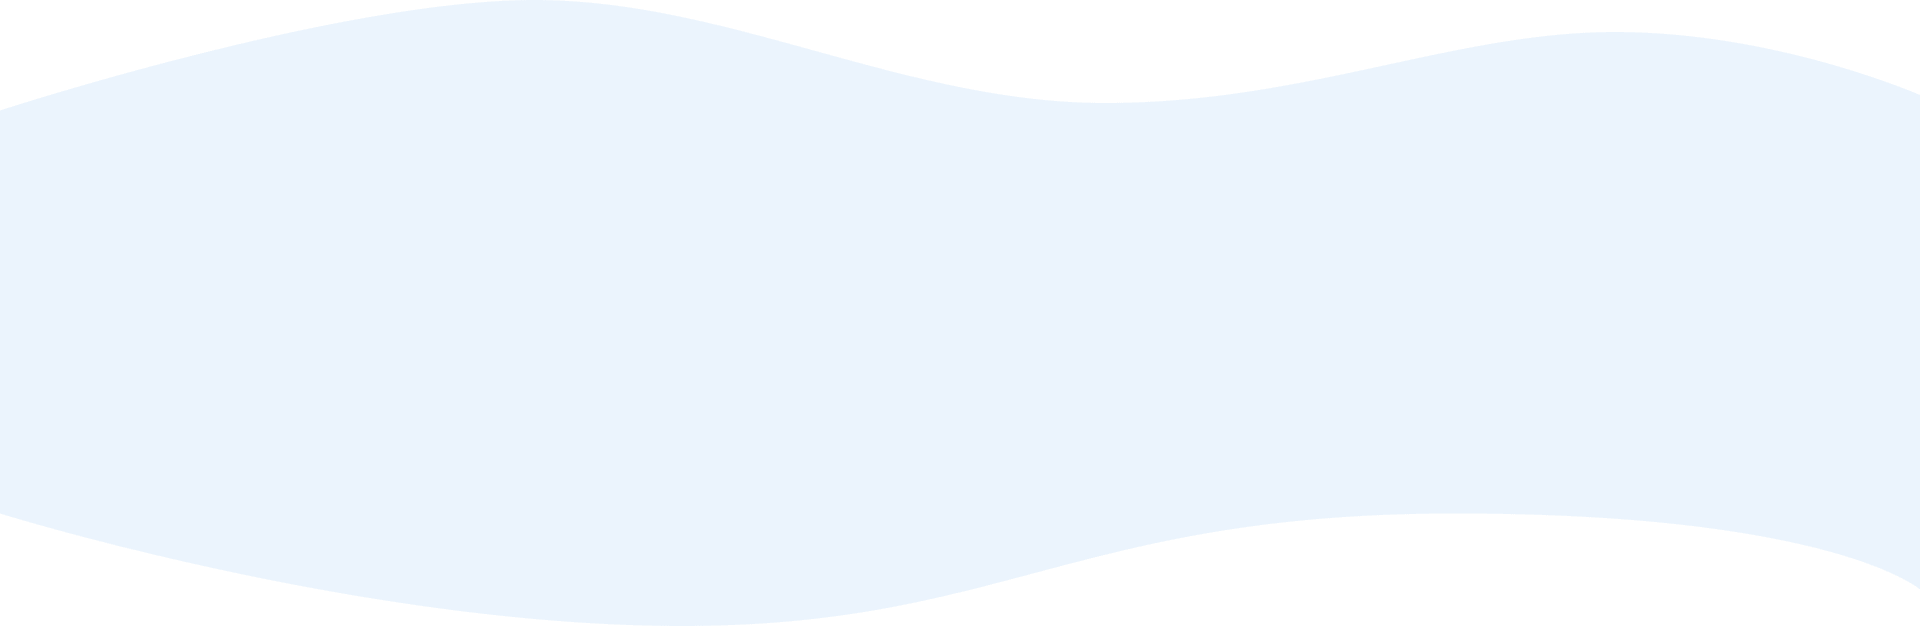 Rectangle 33.png